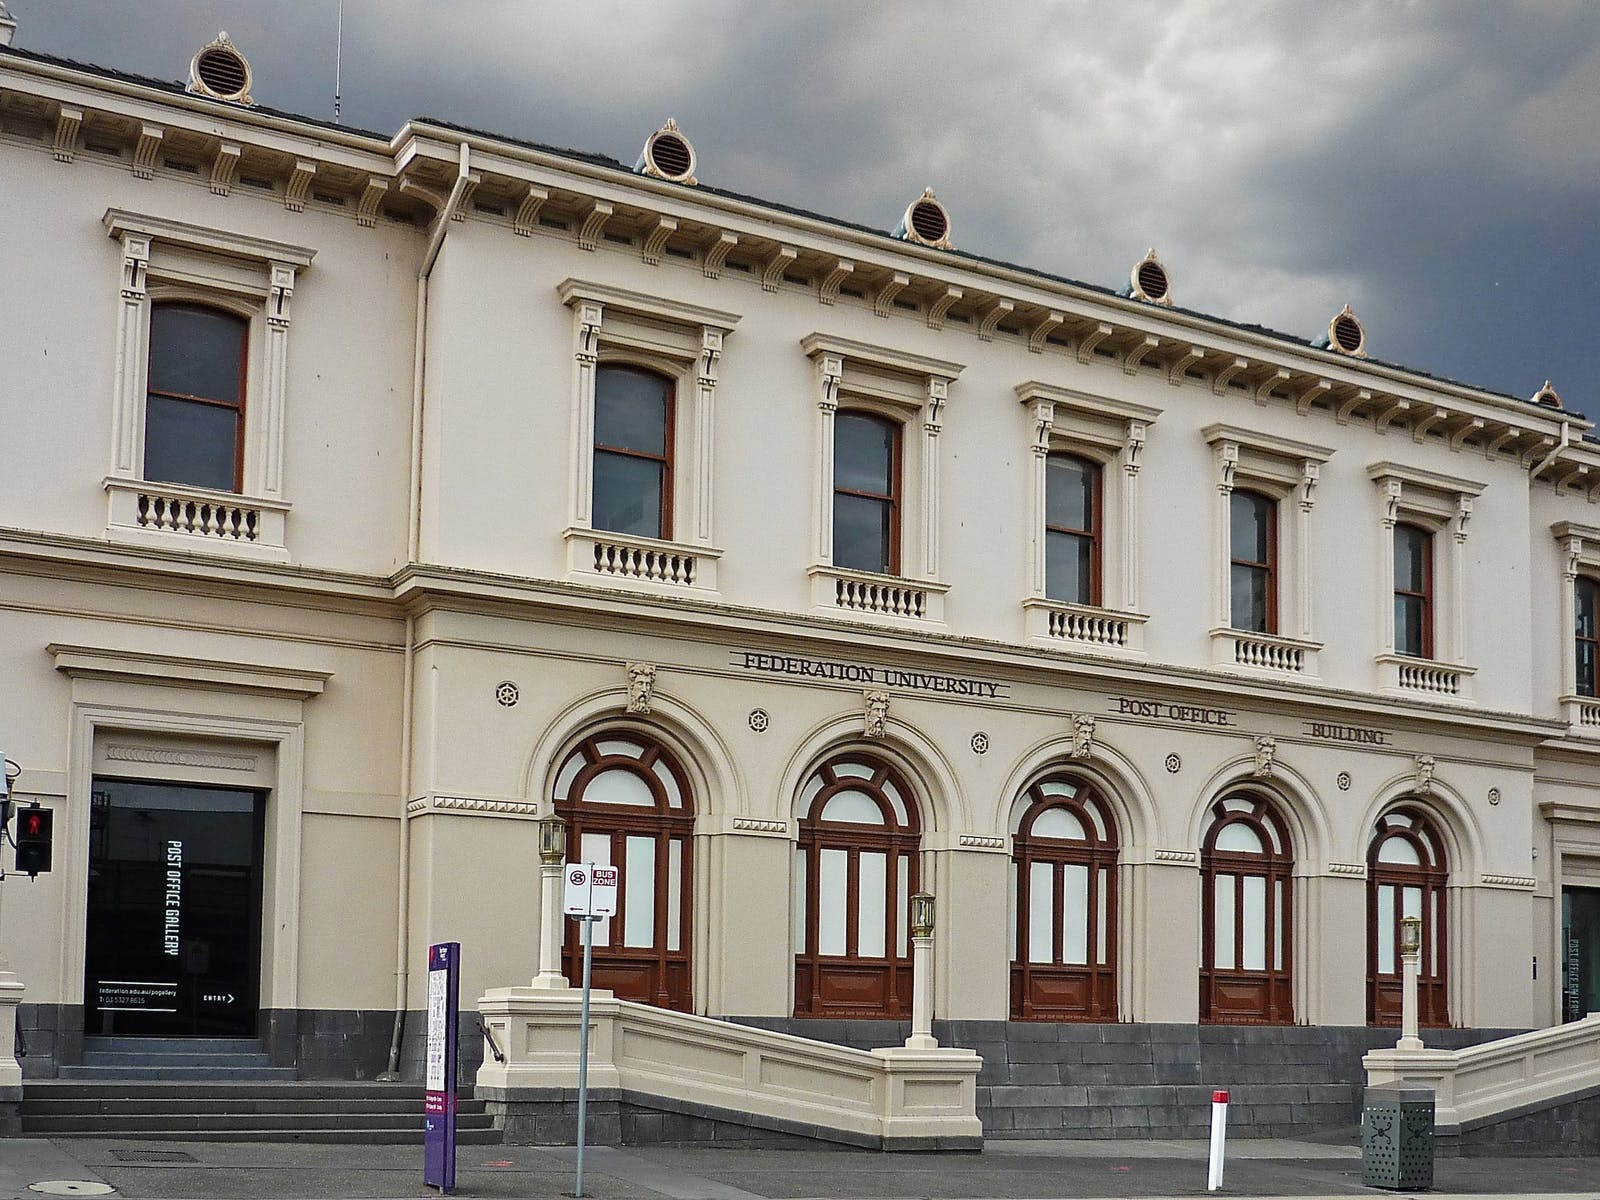 Post Office Gallery, Sturt St, Ballarat